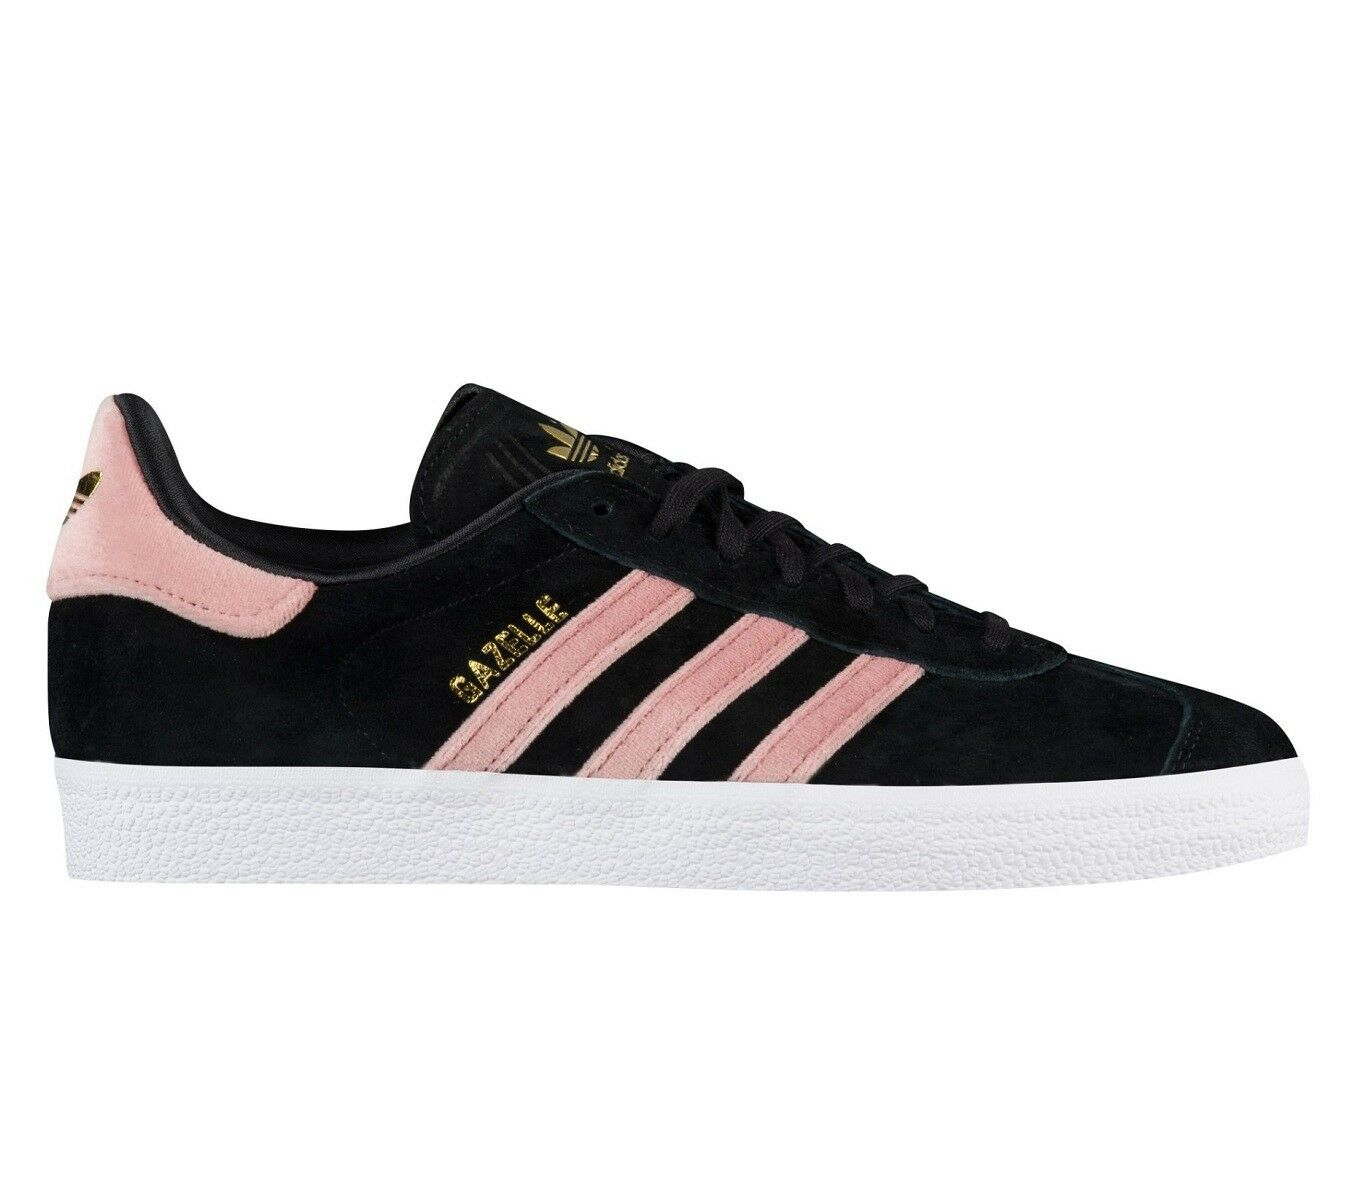 Adidas Gazelle Velvet Vibes Pack Womens DB0164 Black Raw Pink shoes Size 6.5